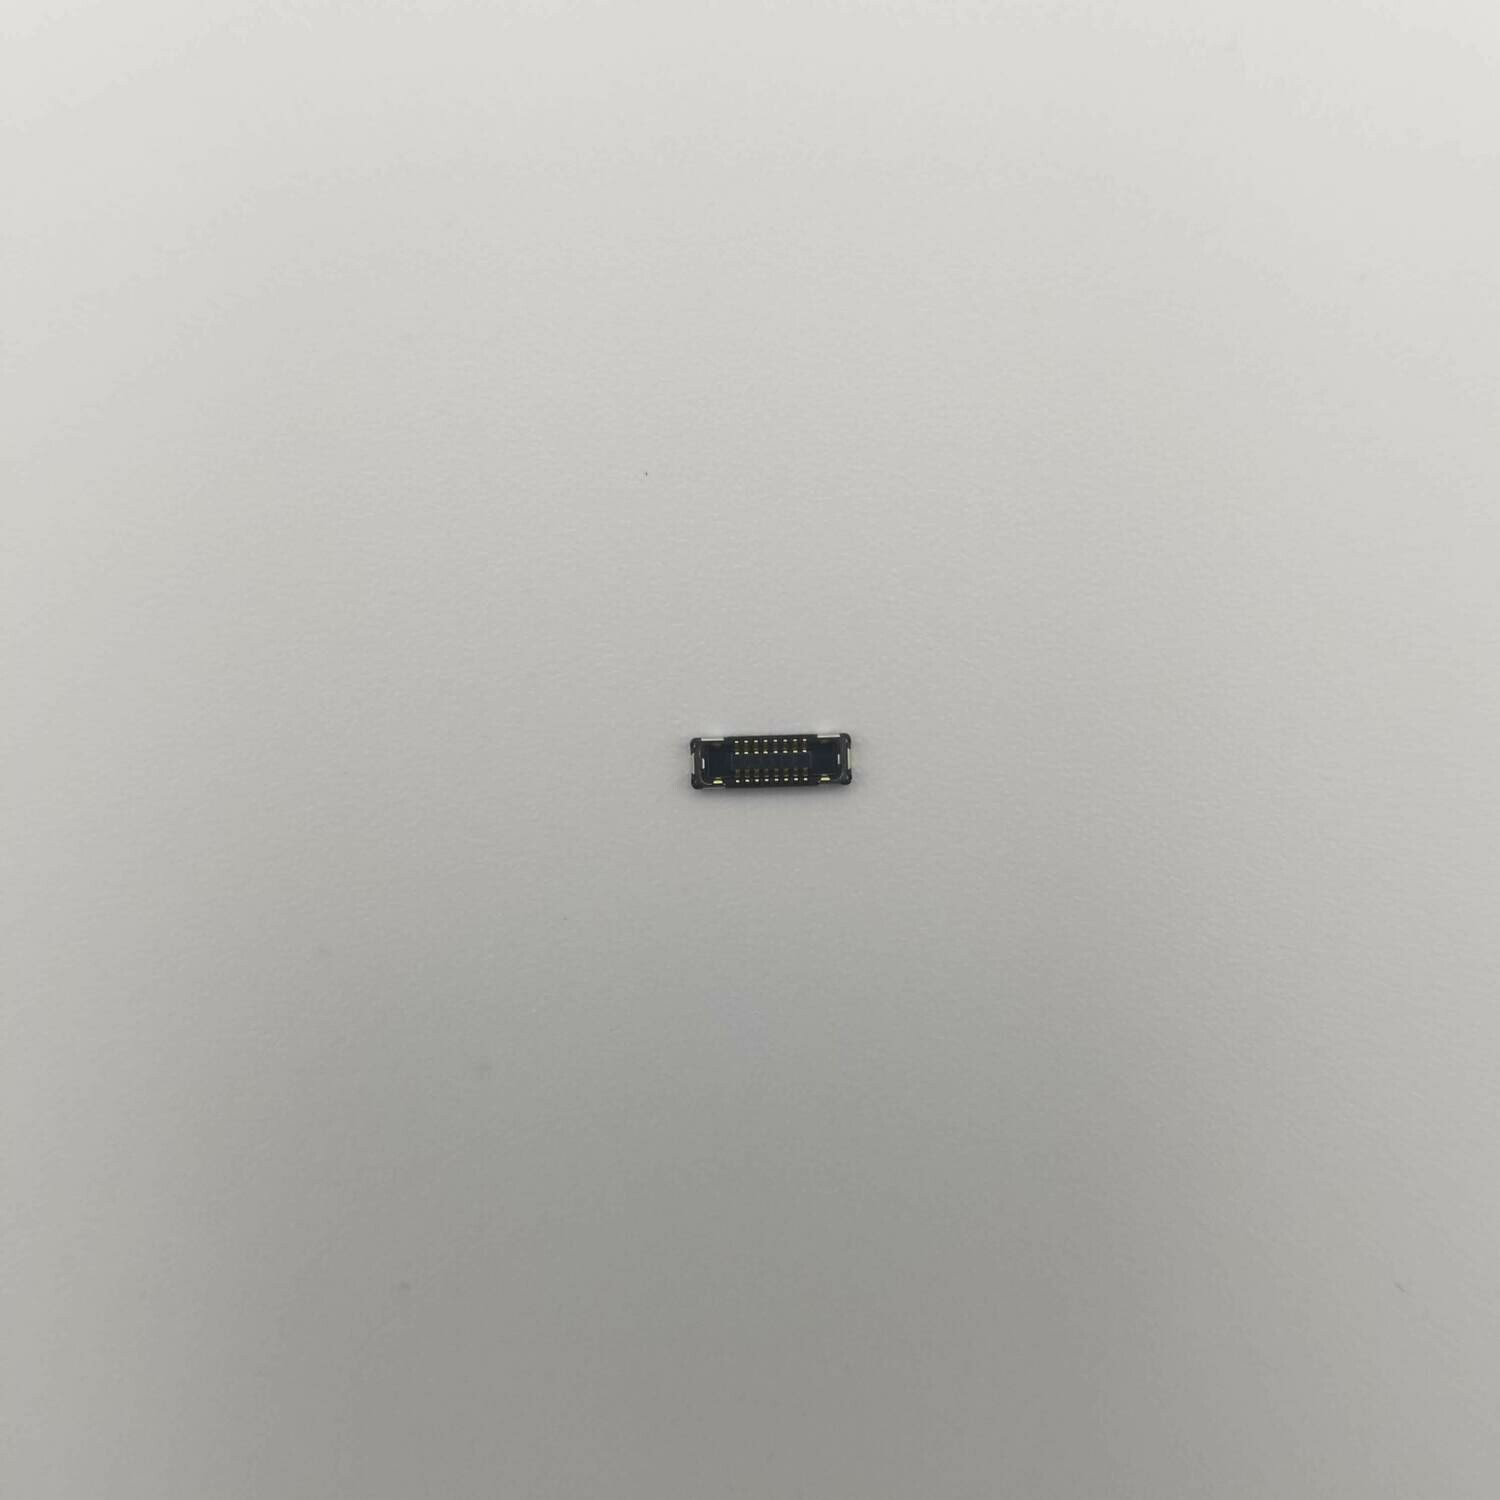 iPhone 6 home button connector